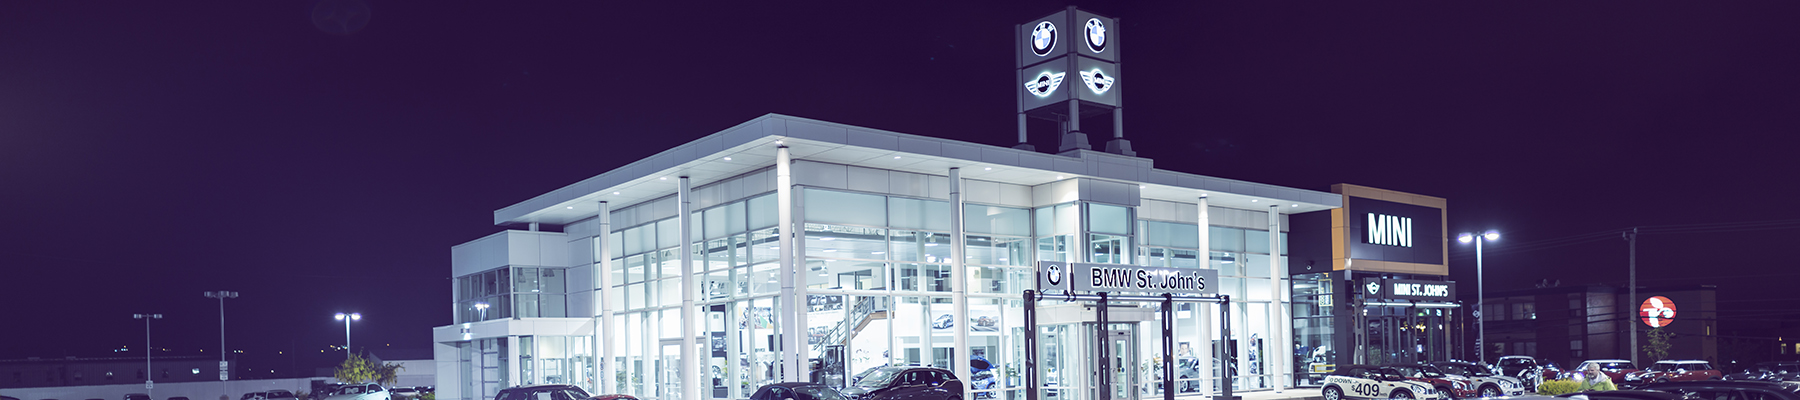 BMW St. John's dealership